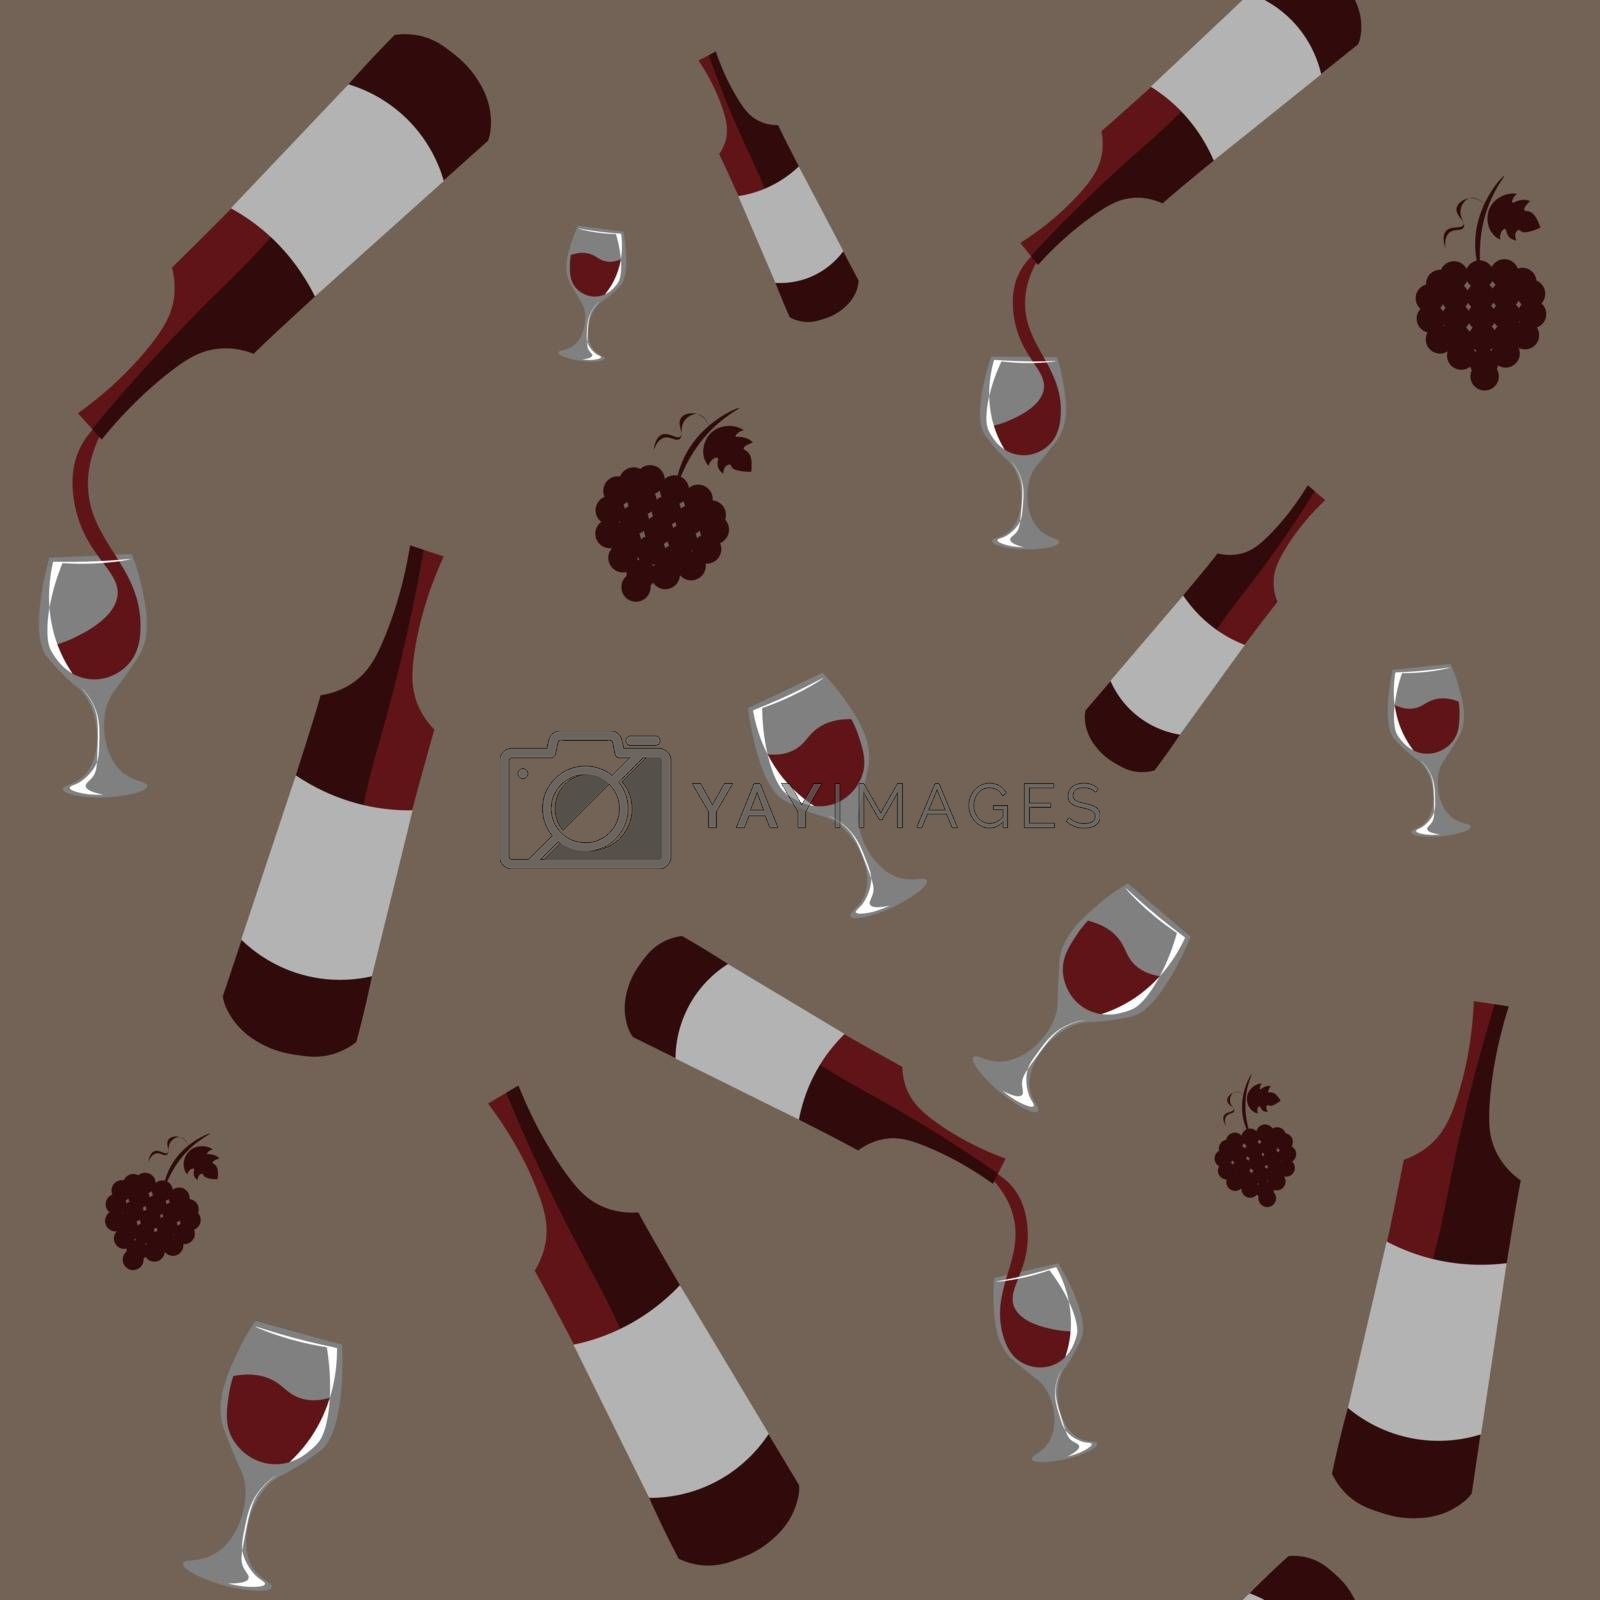 Seamless pattern with several bottles of red wine pouring into glasses on dark beige background